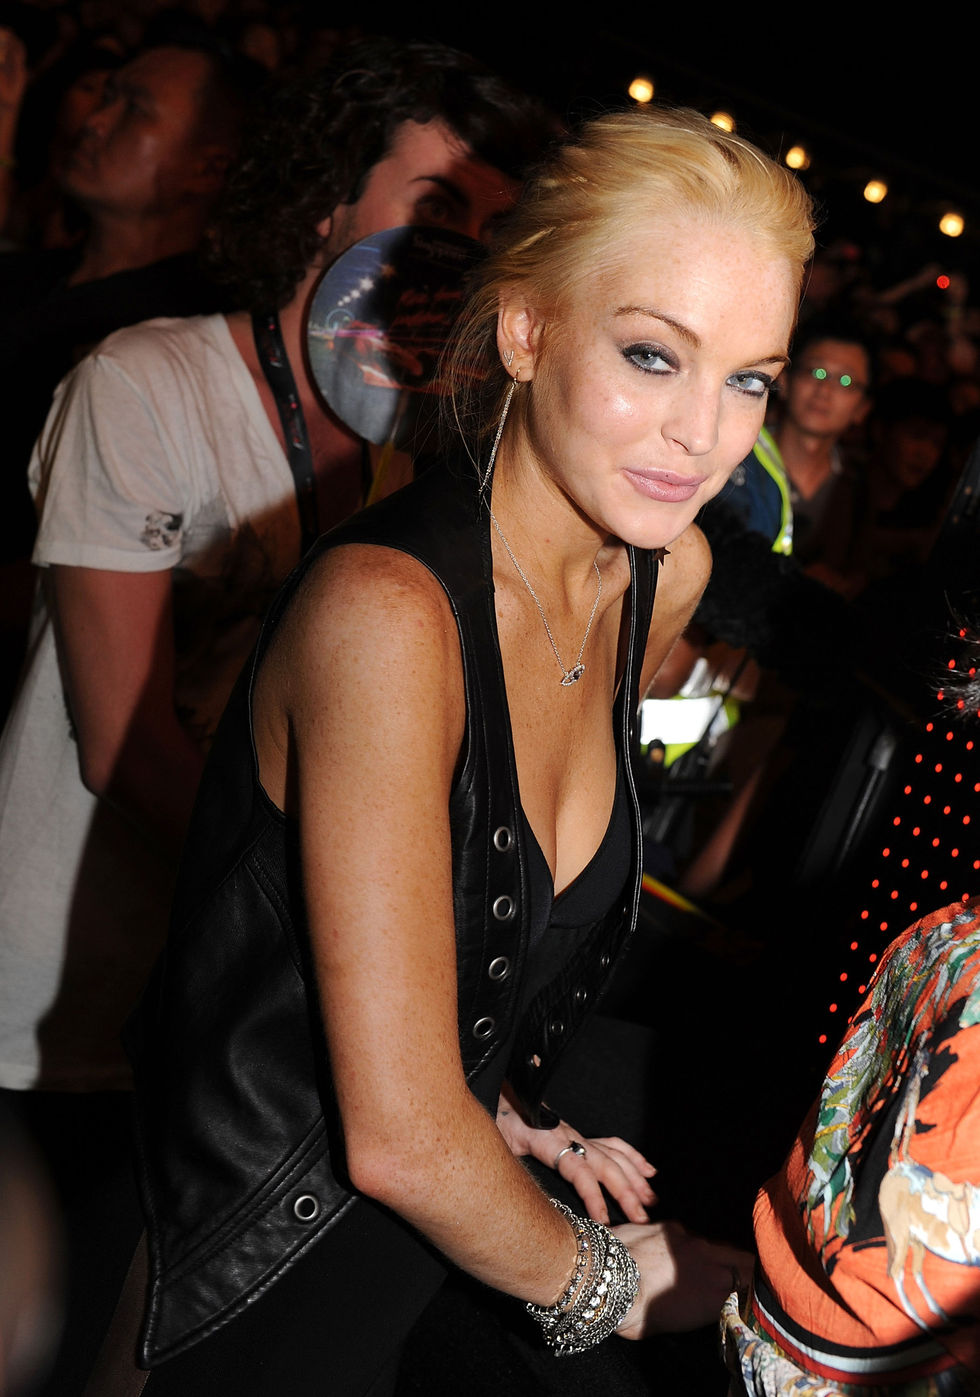 lindsay-lohan-hosting-the-f1-rocks-in-singapore-16